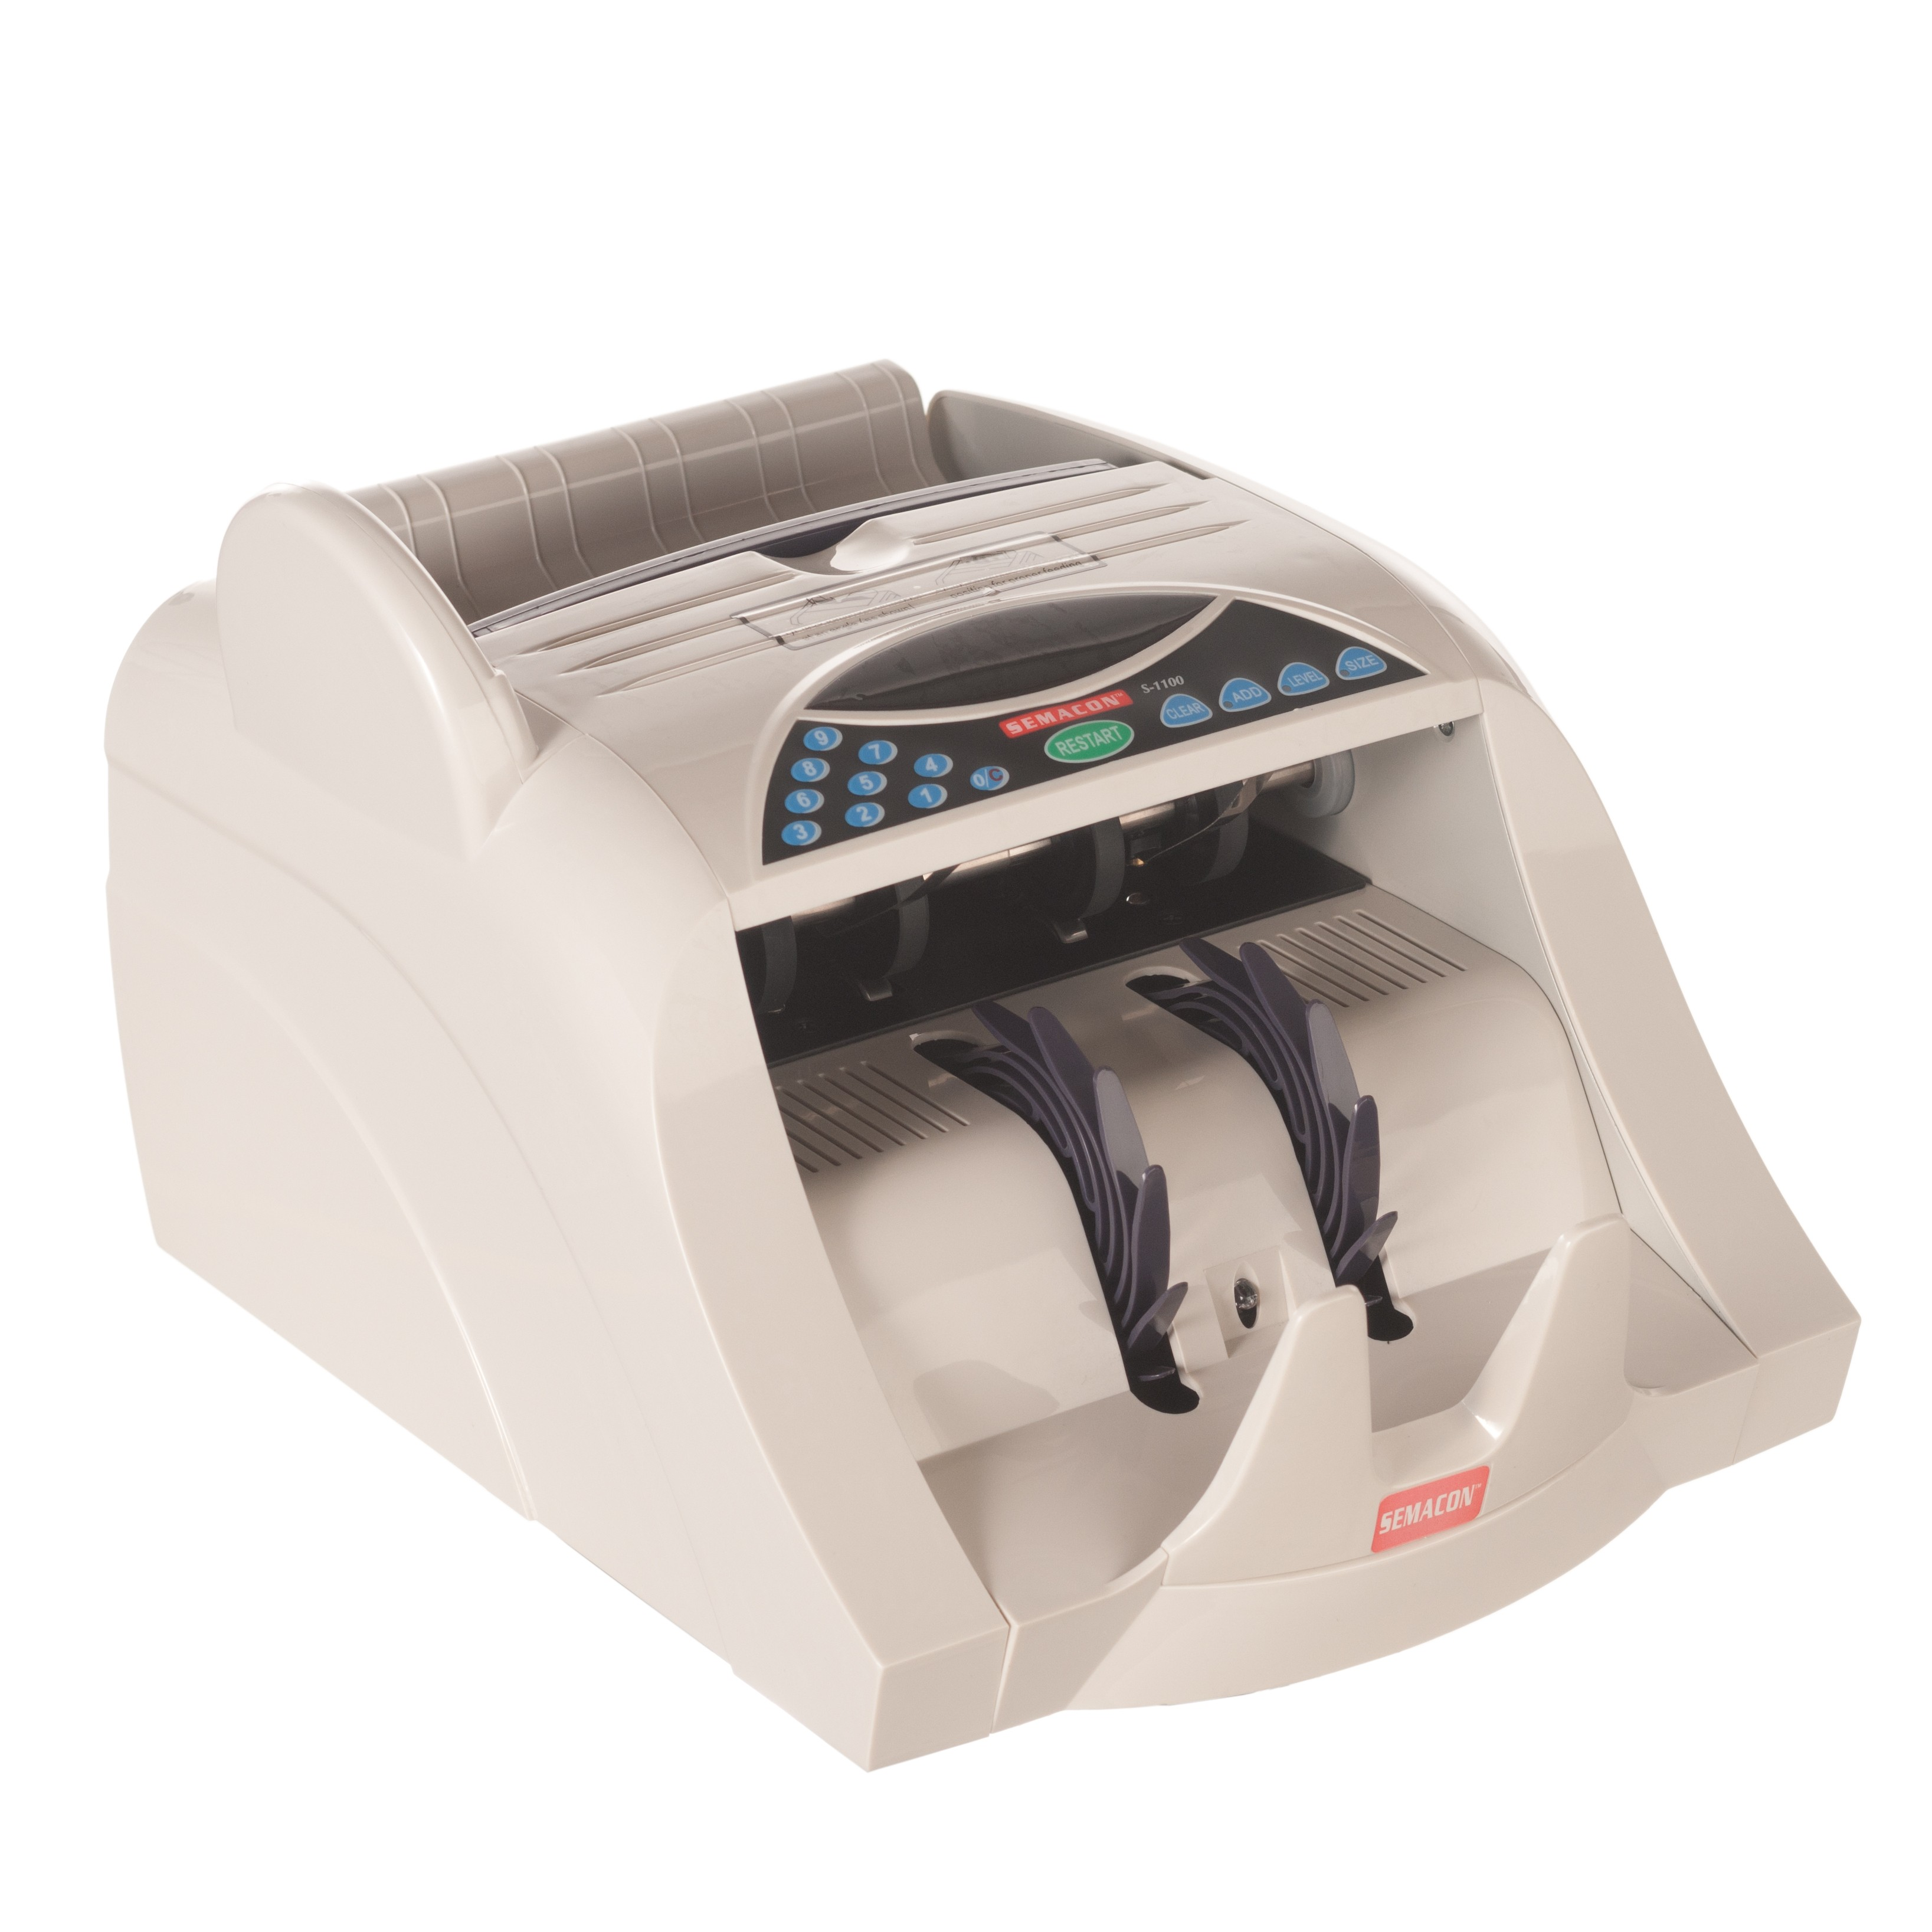 Semacon S-1100 Series Heavy Duty Currency Counters